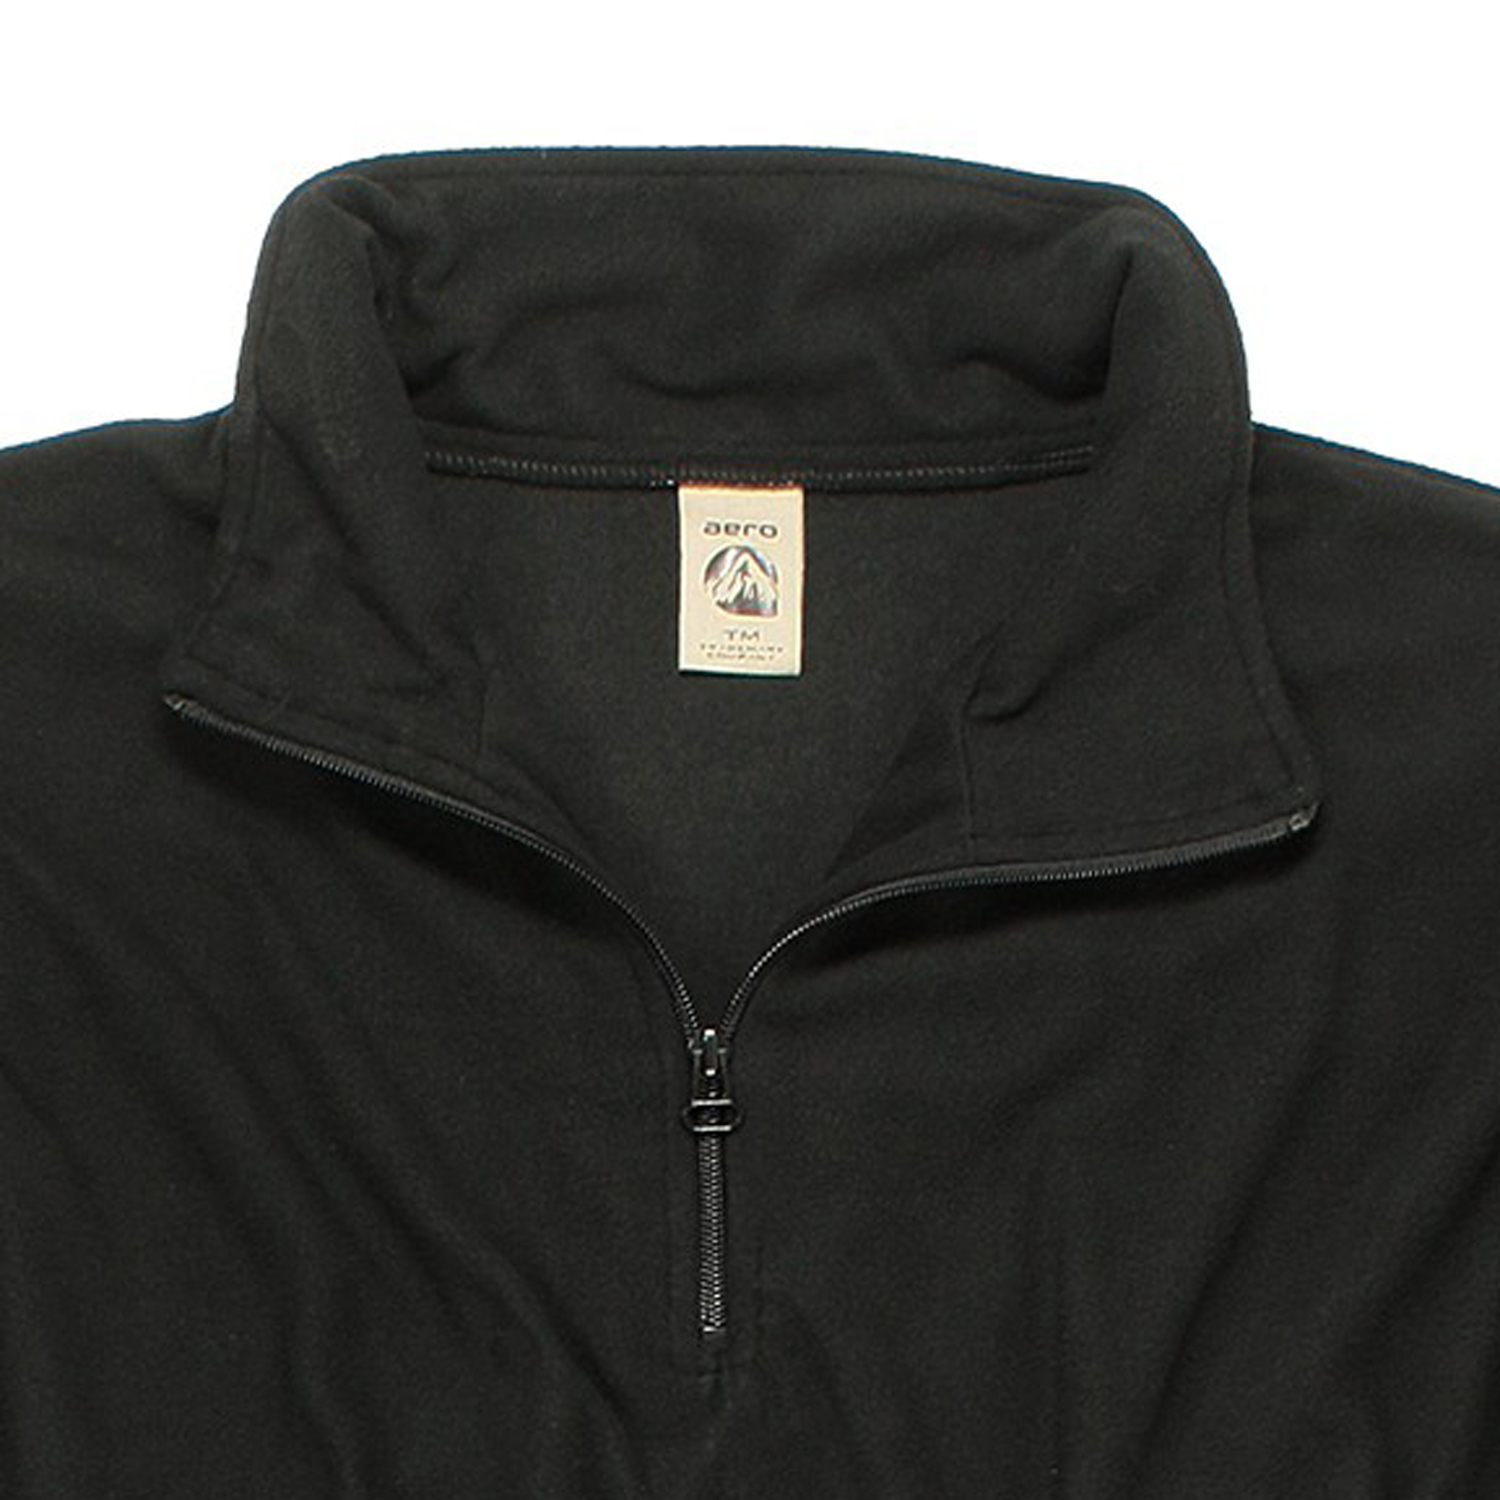 Detail Image to Black Fleece Pullover by Aero in plus sizes up to 8XL